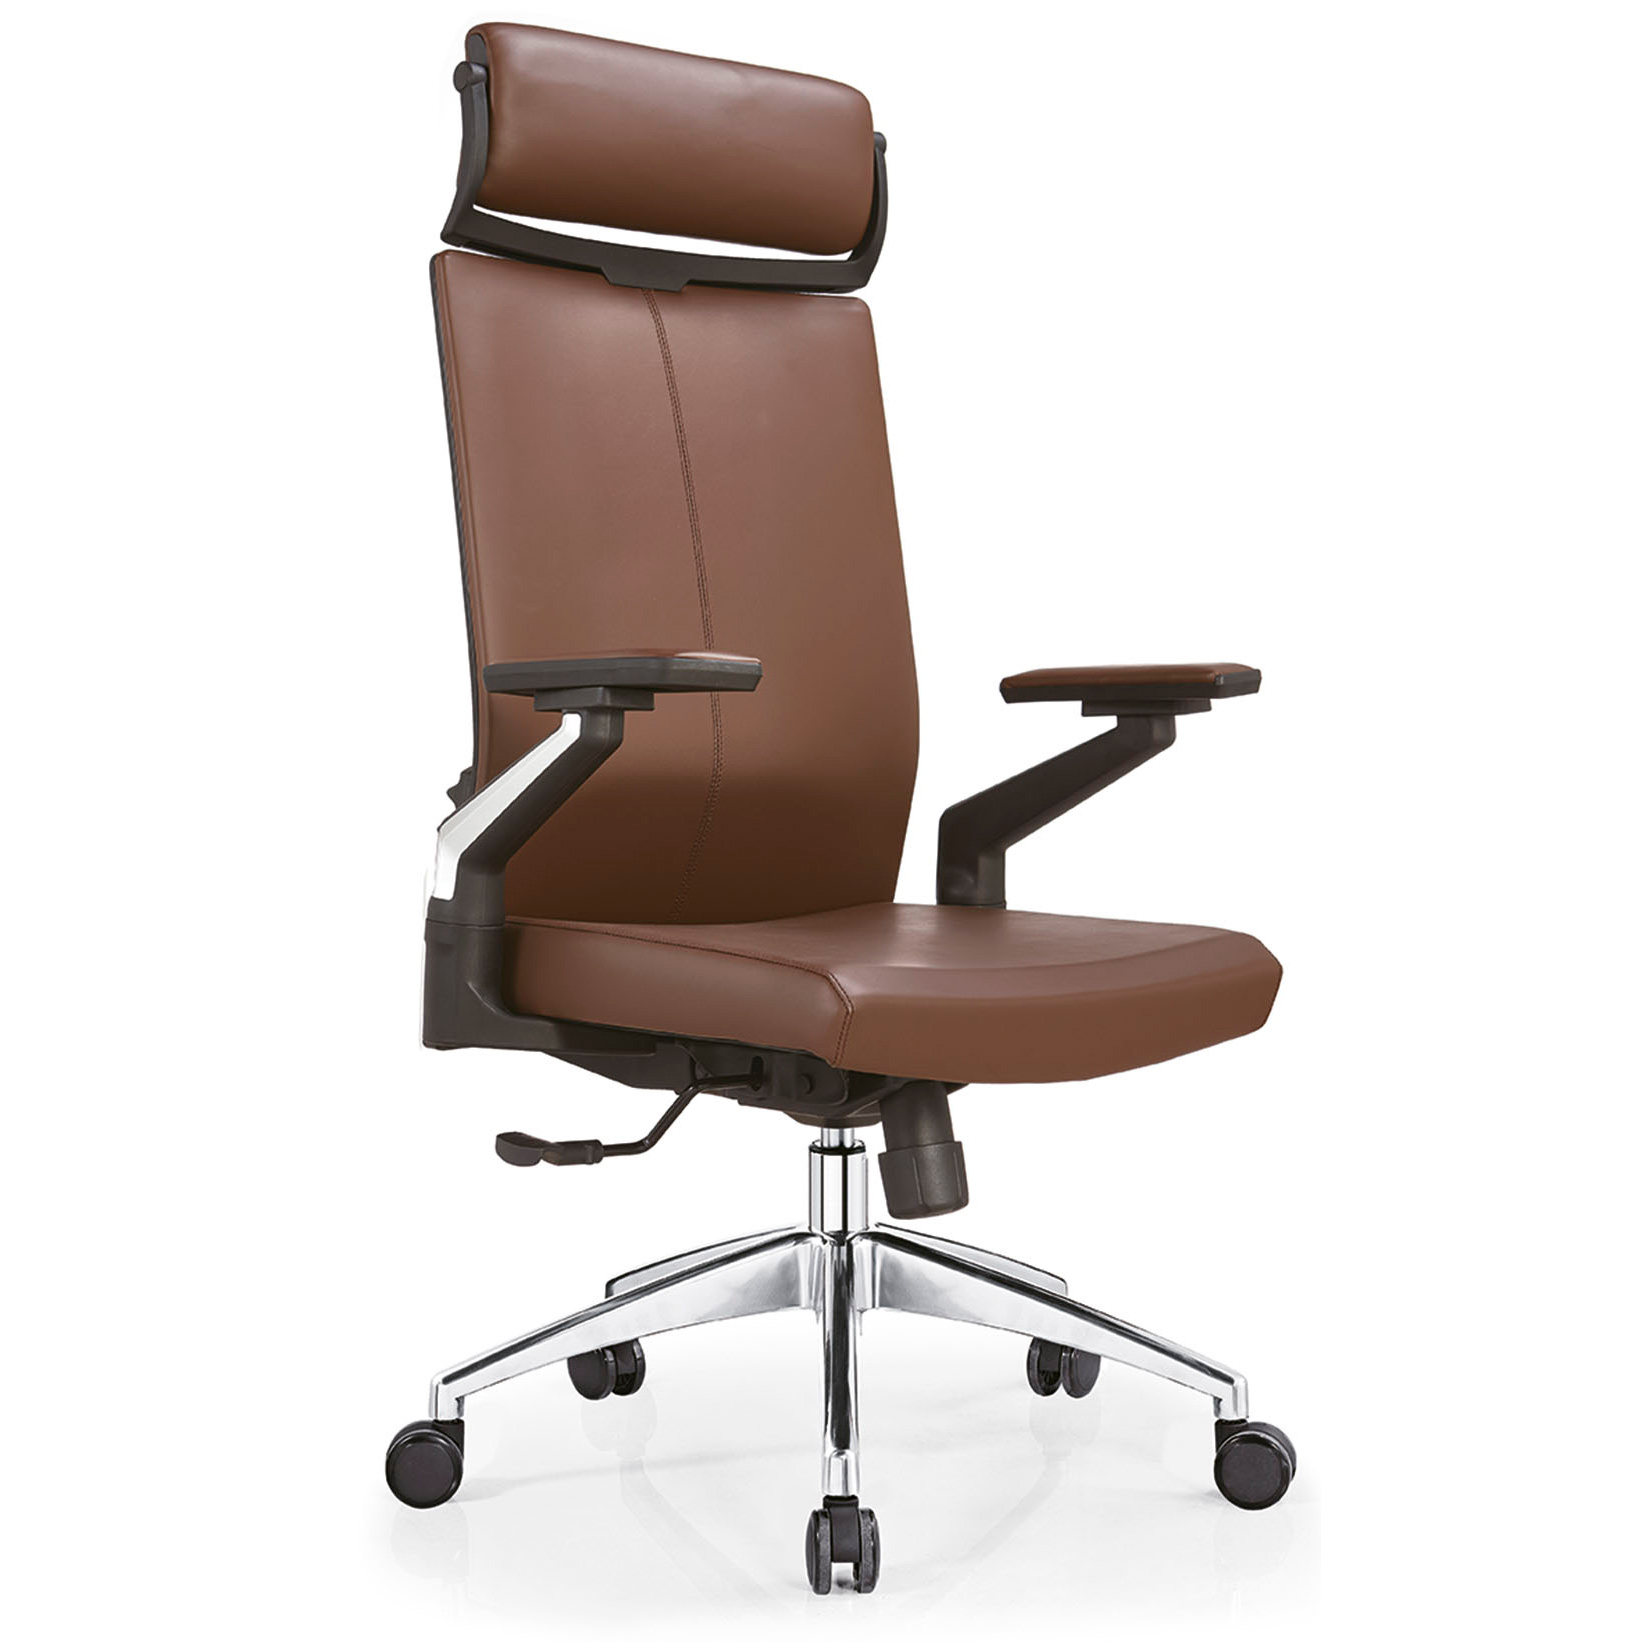 Brown Leather Office Chair Office Furniture Swivel Chair Office Swivel Leather Chair Chengdu Gengxin Furniture Co Ltd Ecplaza Net